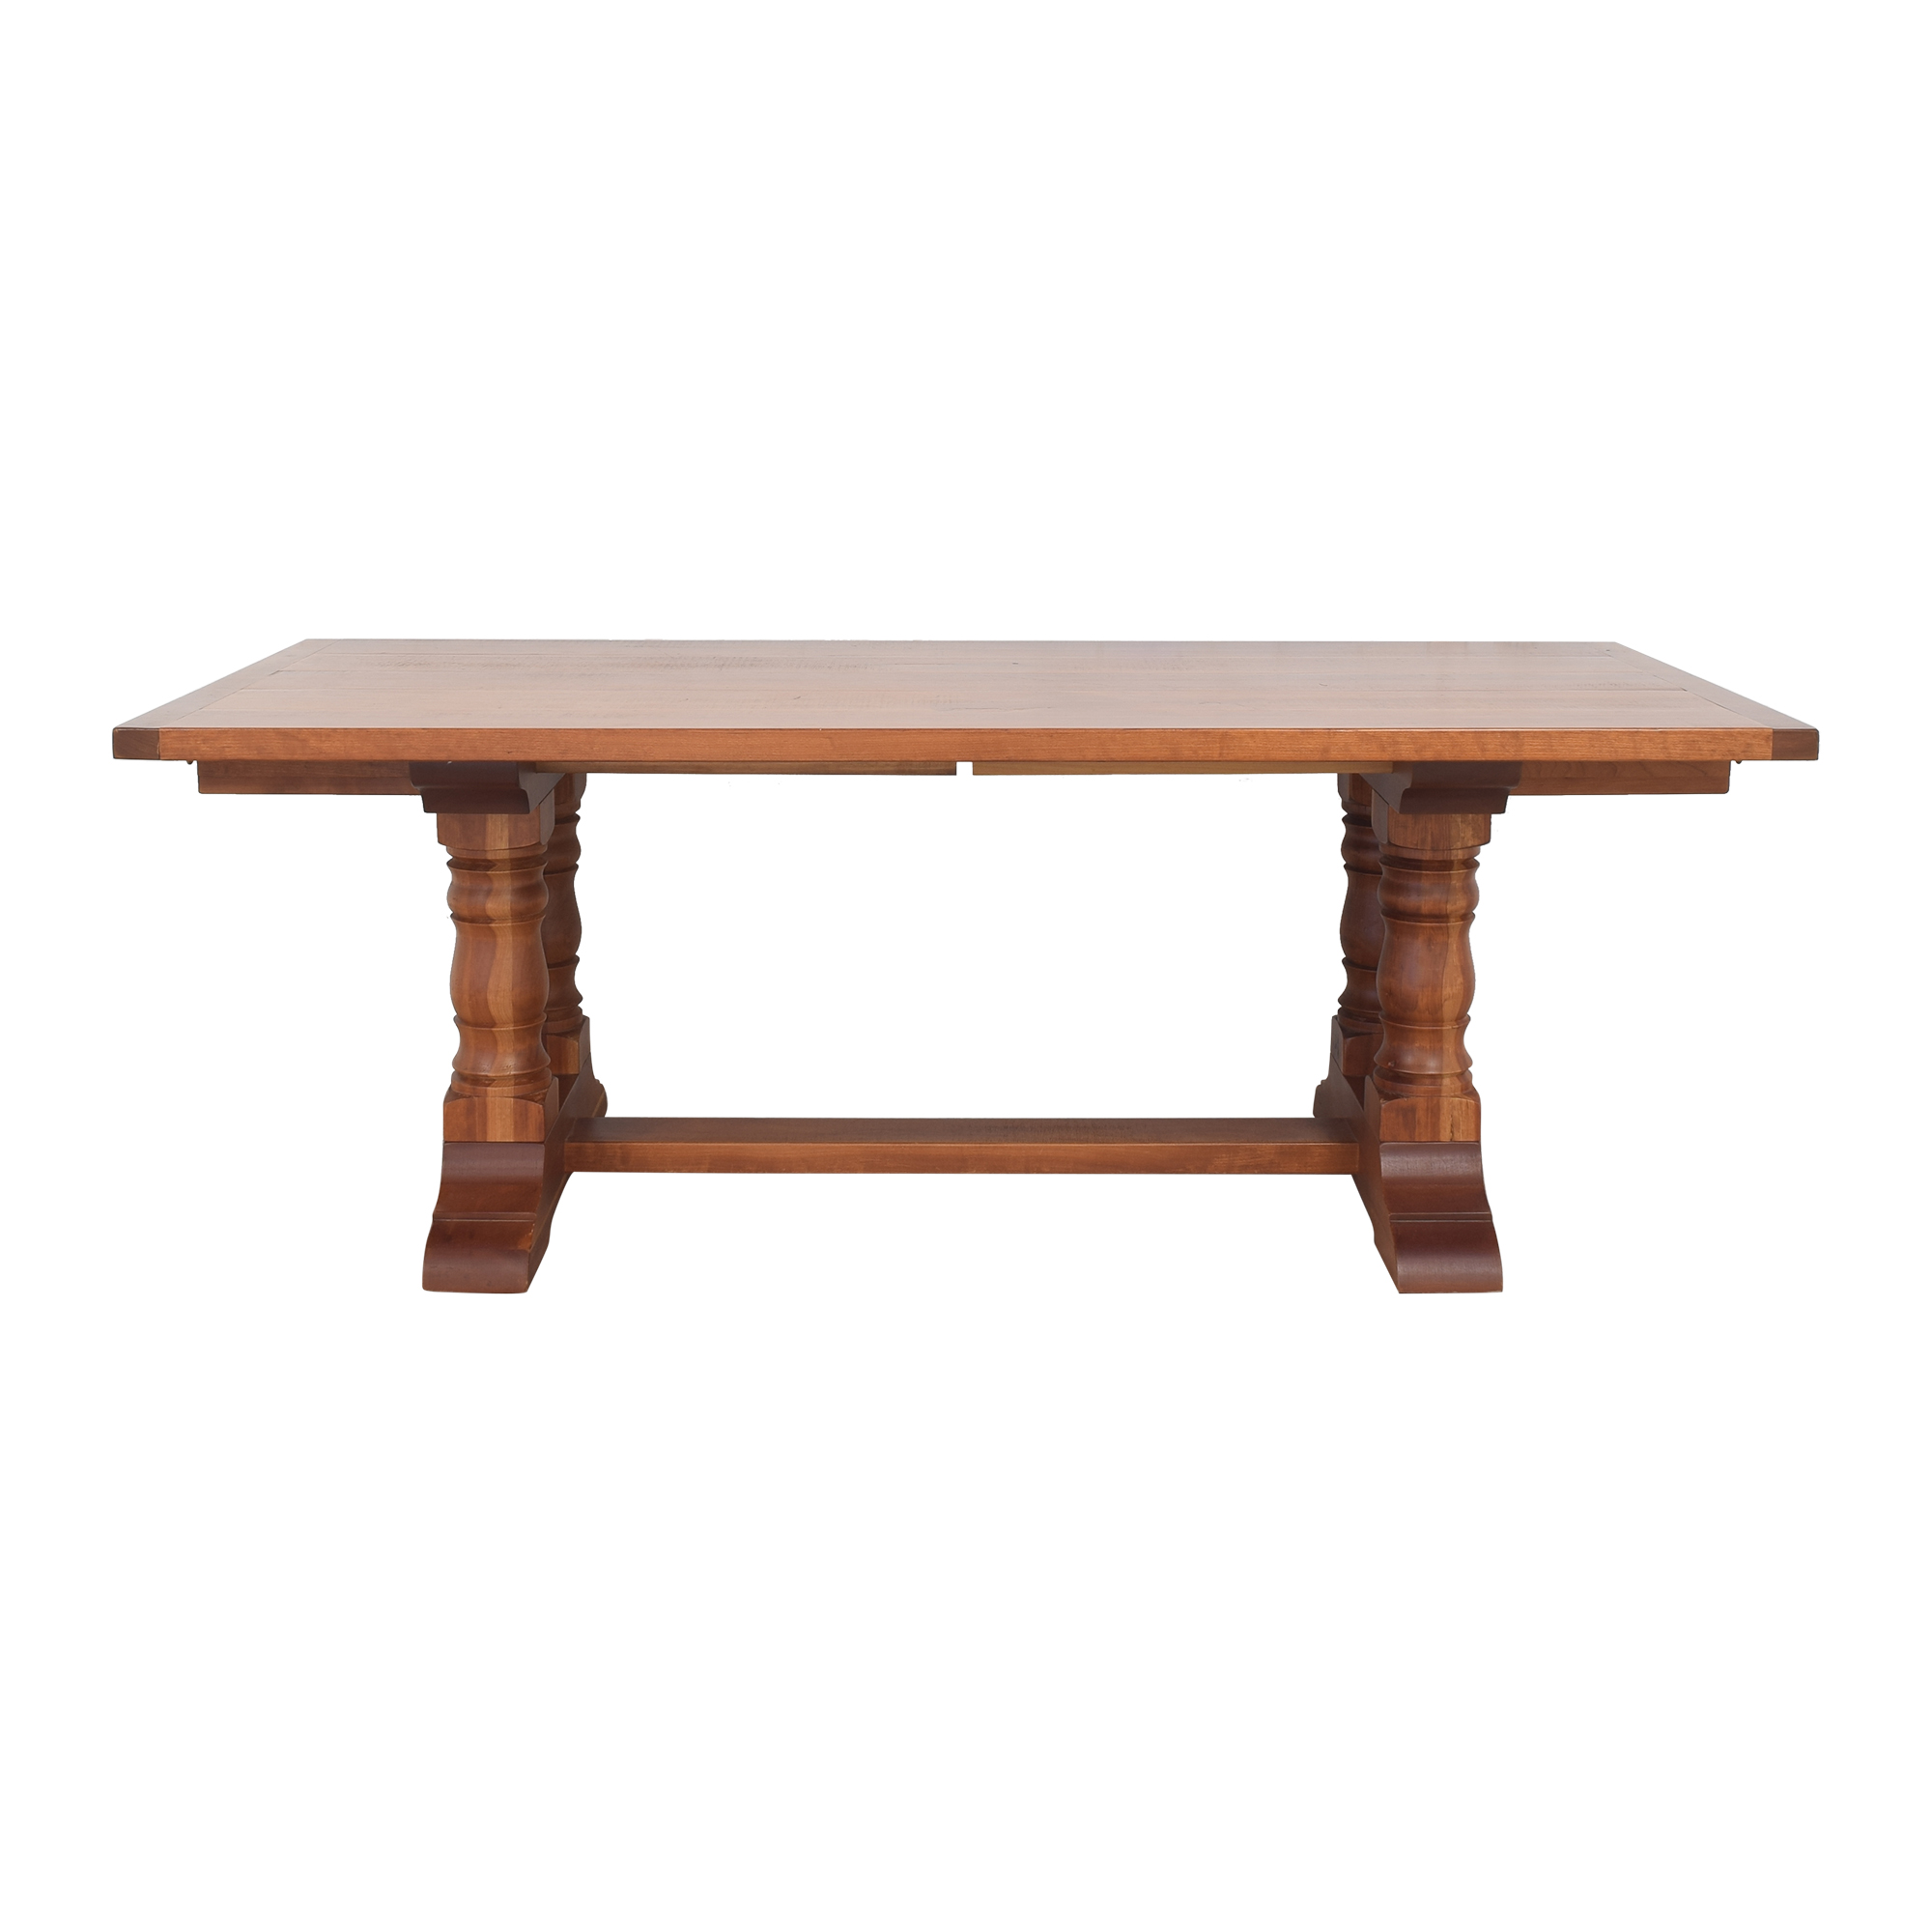 Country Willow Country Willow Silverlake Extendable Dining Table ct